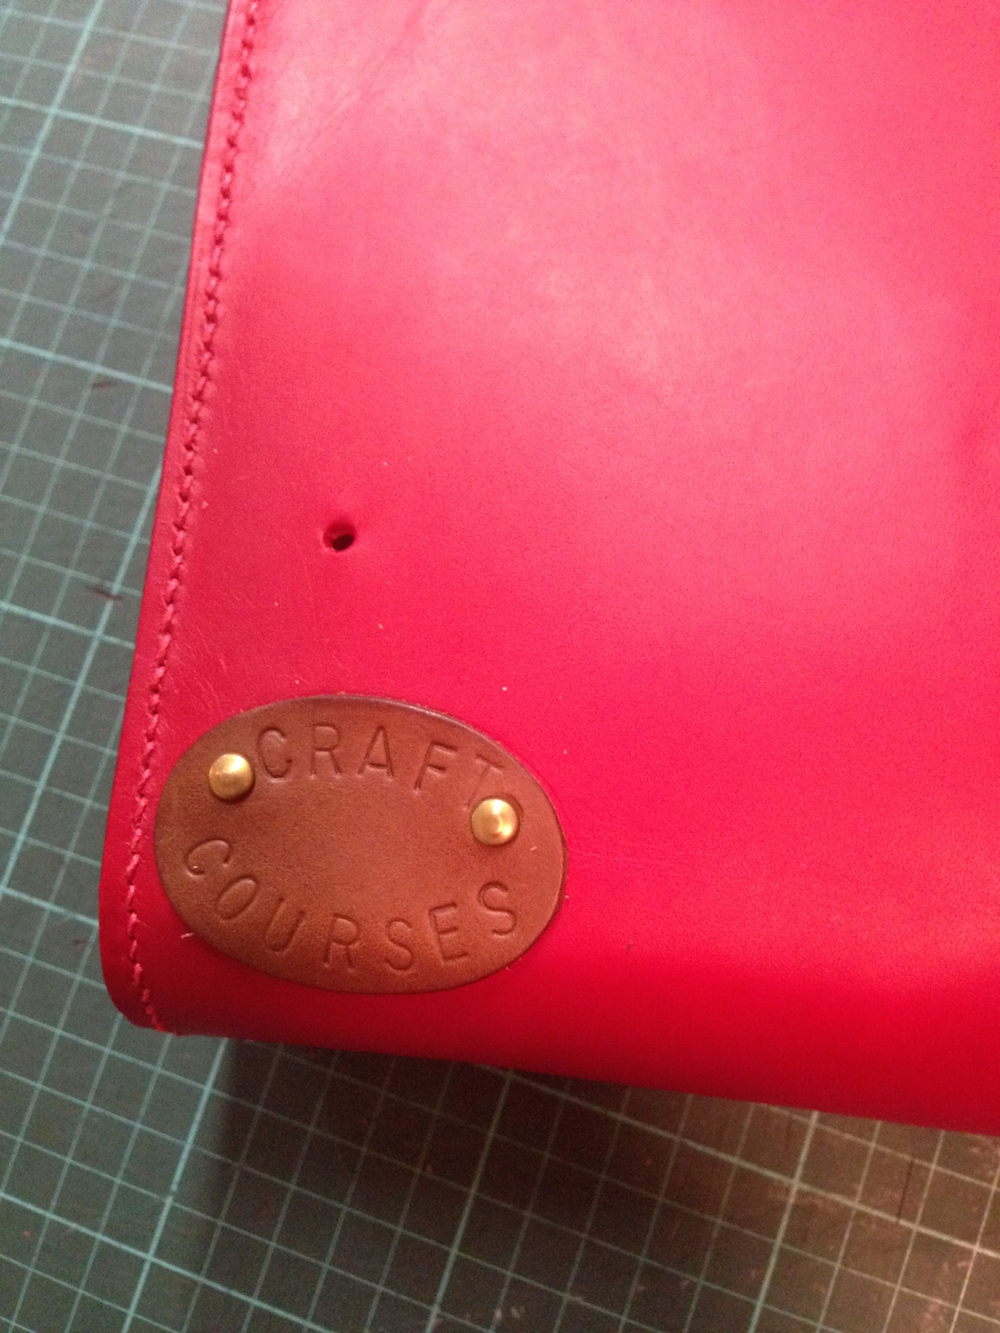 4. making the CraftCourses emblem for my leather bag